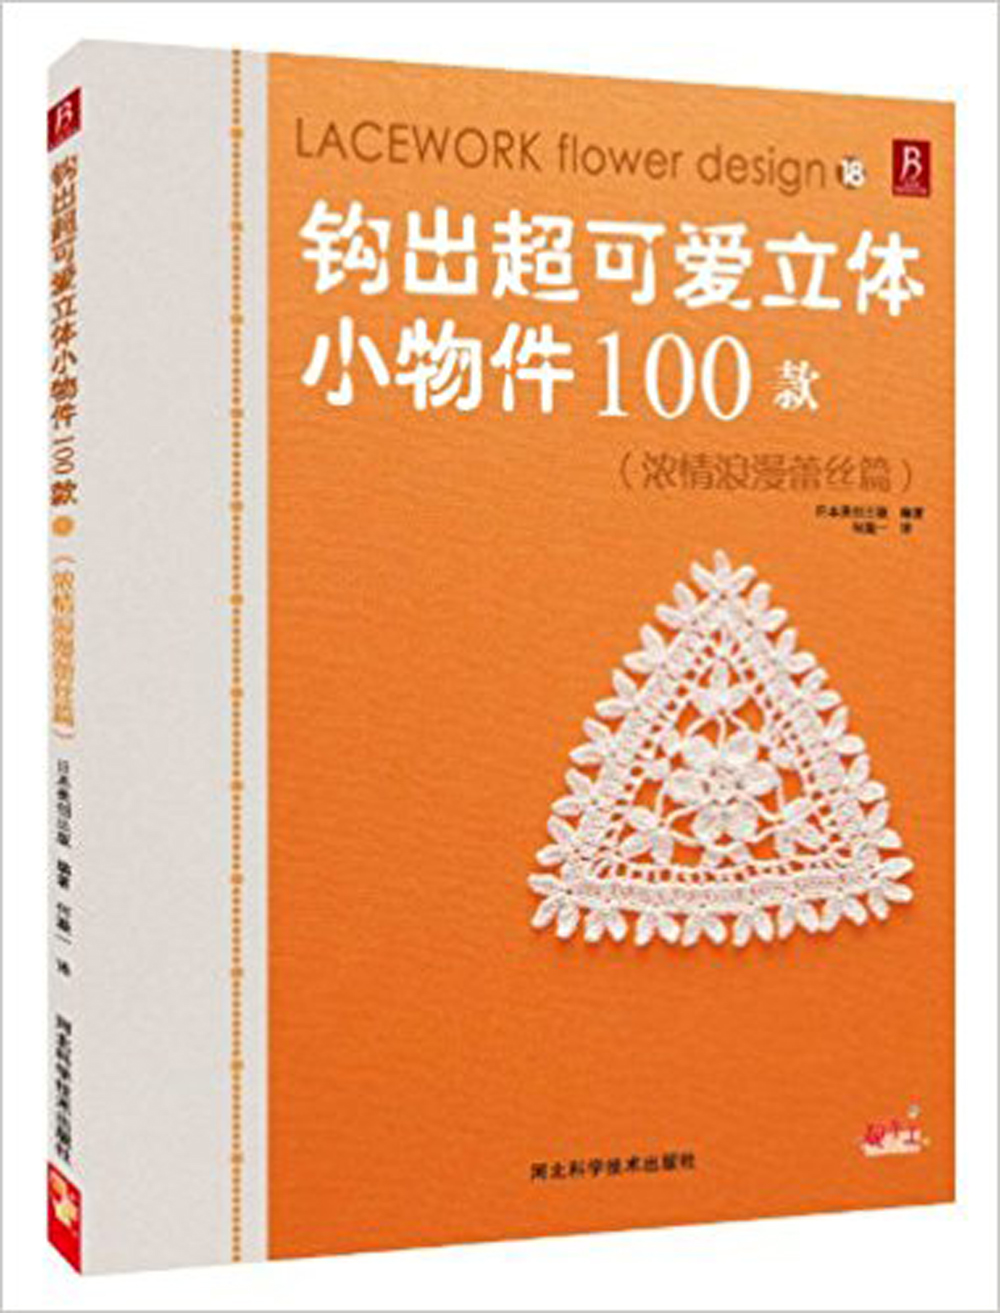 Japanese knitting book Chinese version Weaving super-cute 3D small objects 100 models :Lacework Flower Design 100 super cute little embroidery chinese embroidery handmade art design book